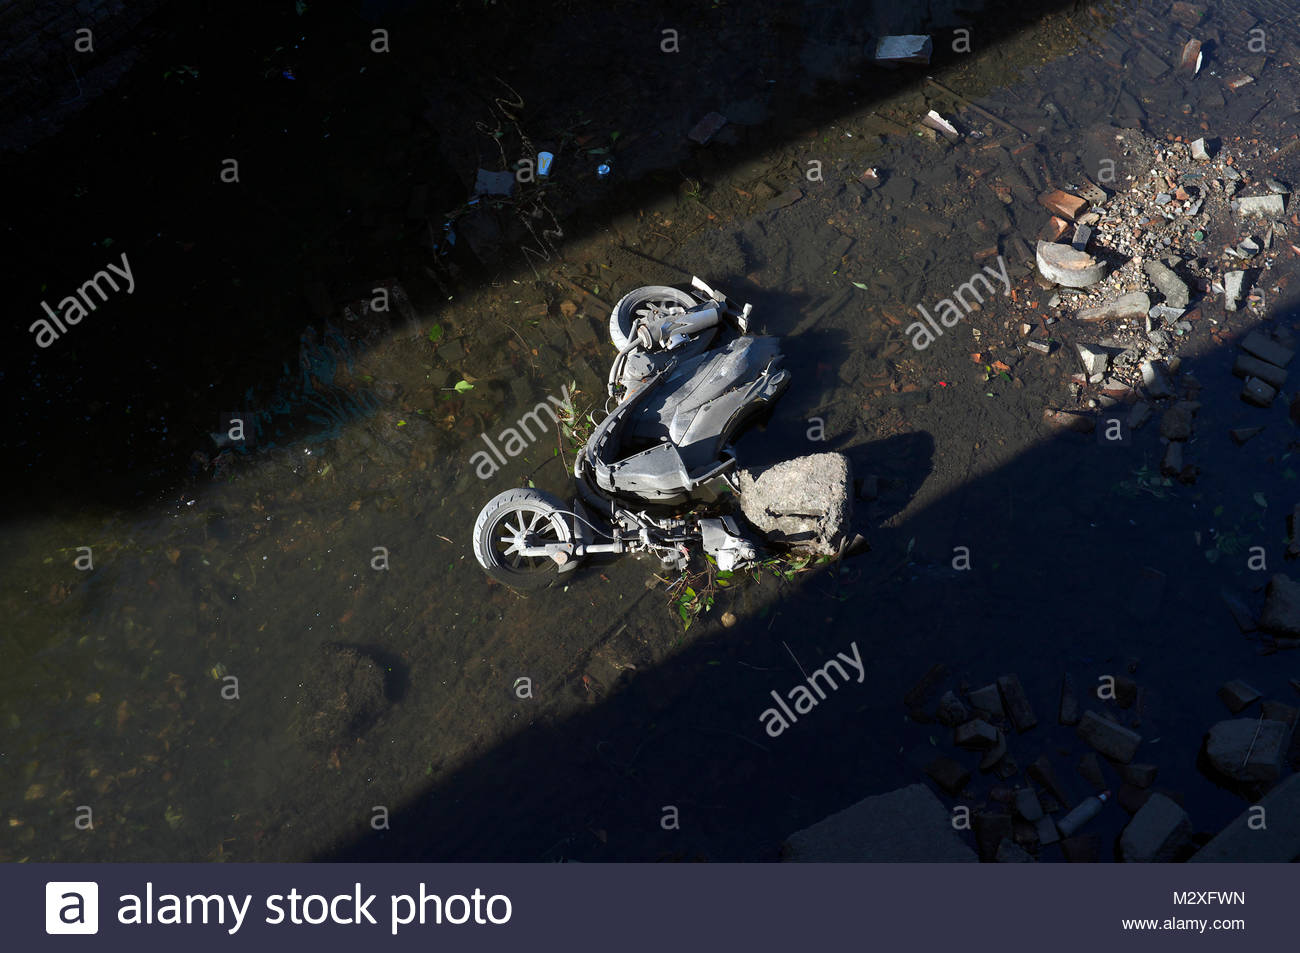 A dumped scooter in a drained section of the Grand Union Canal in Birmingham, West Midlands, UK. - Stock Image